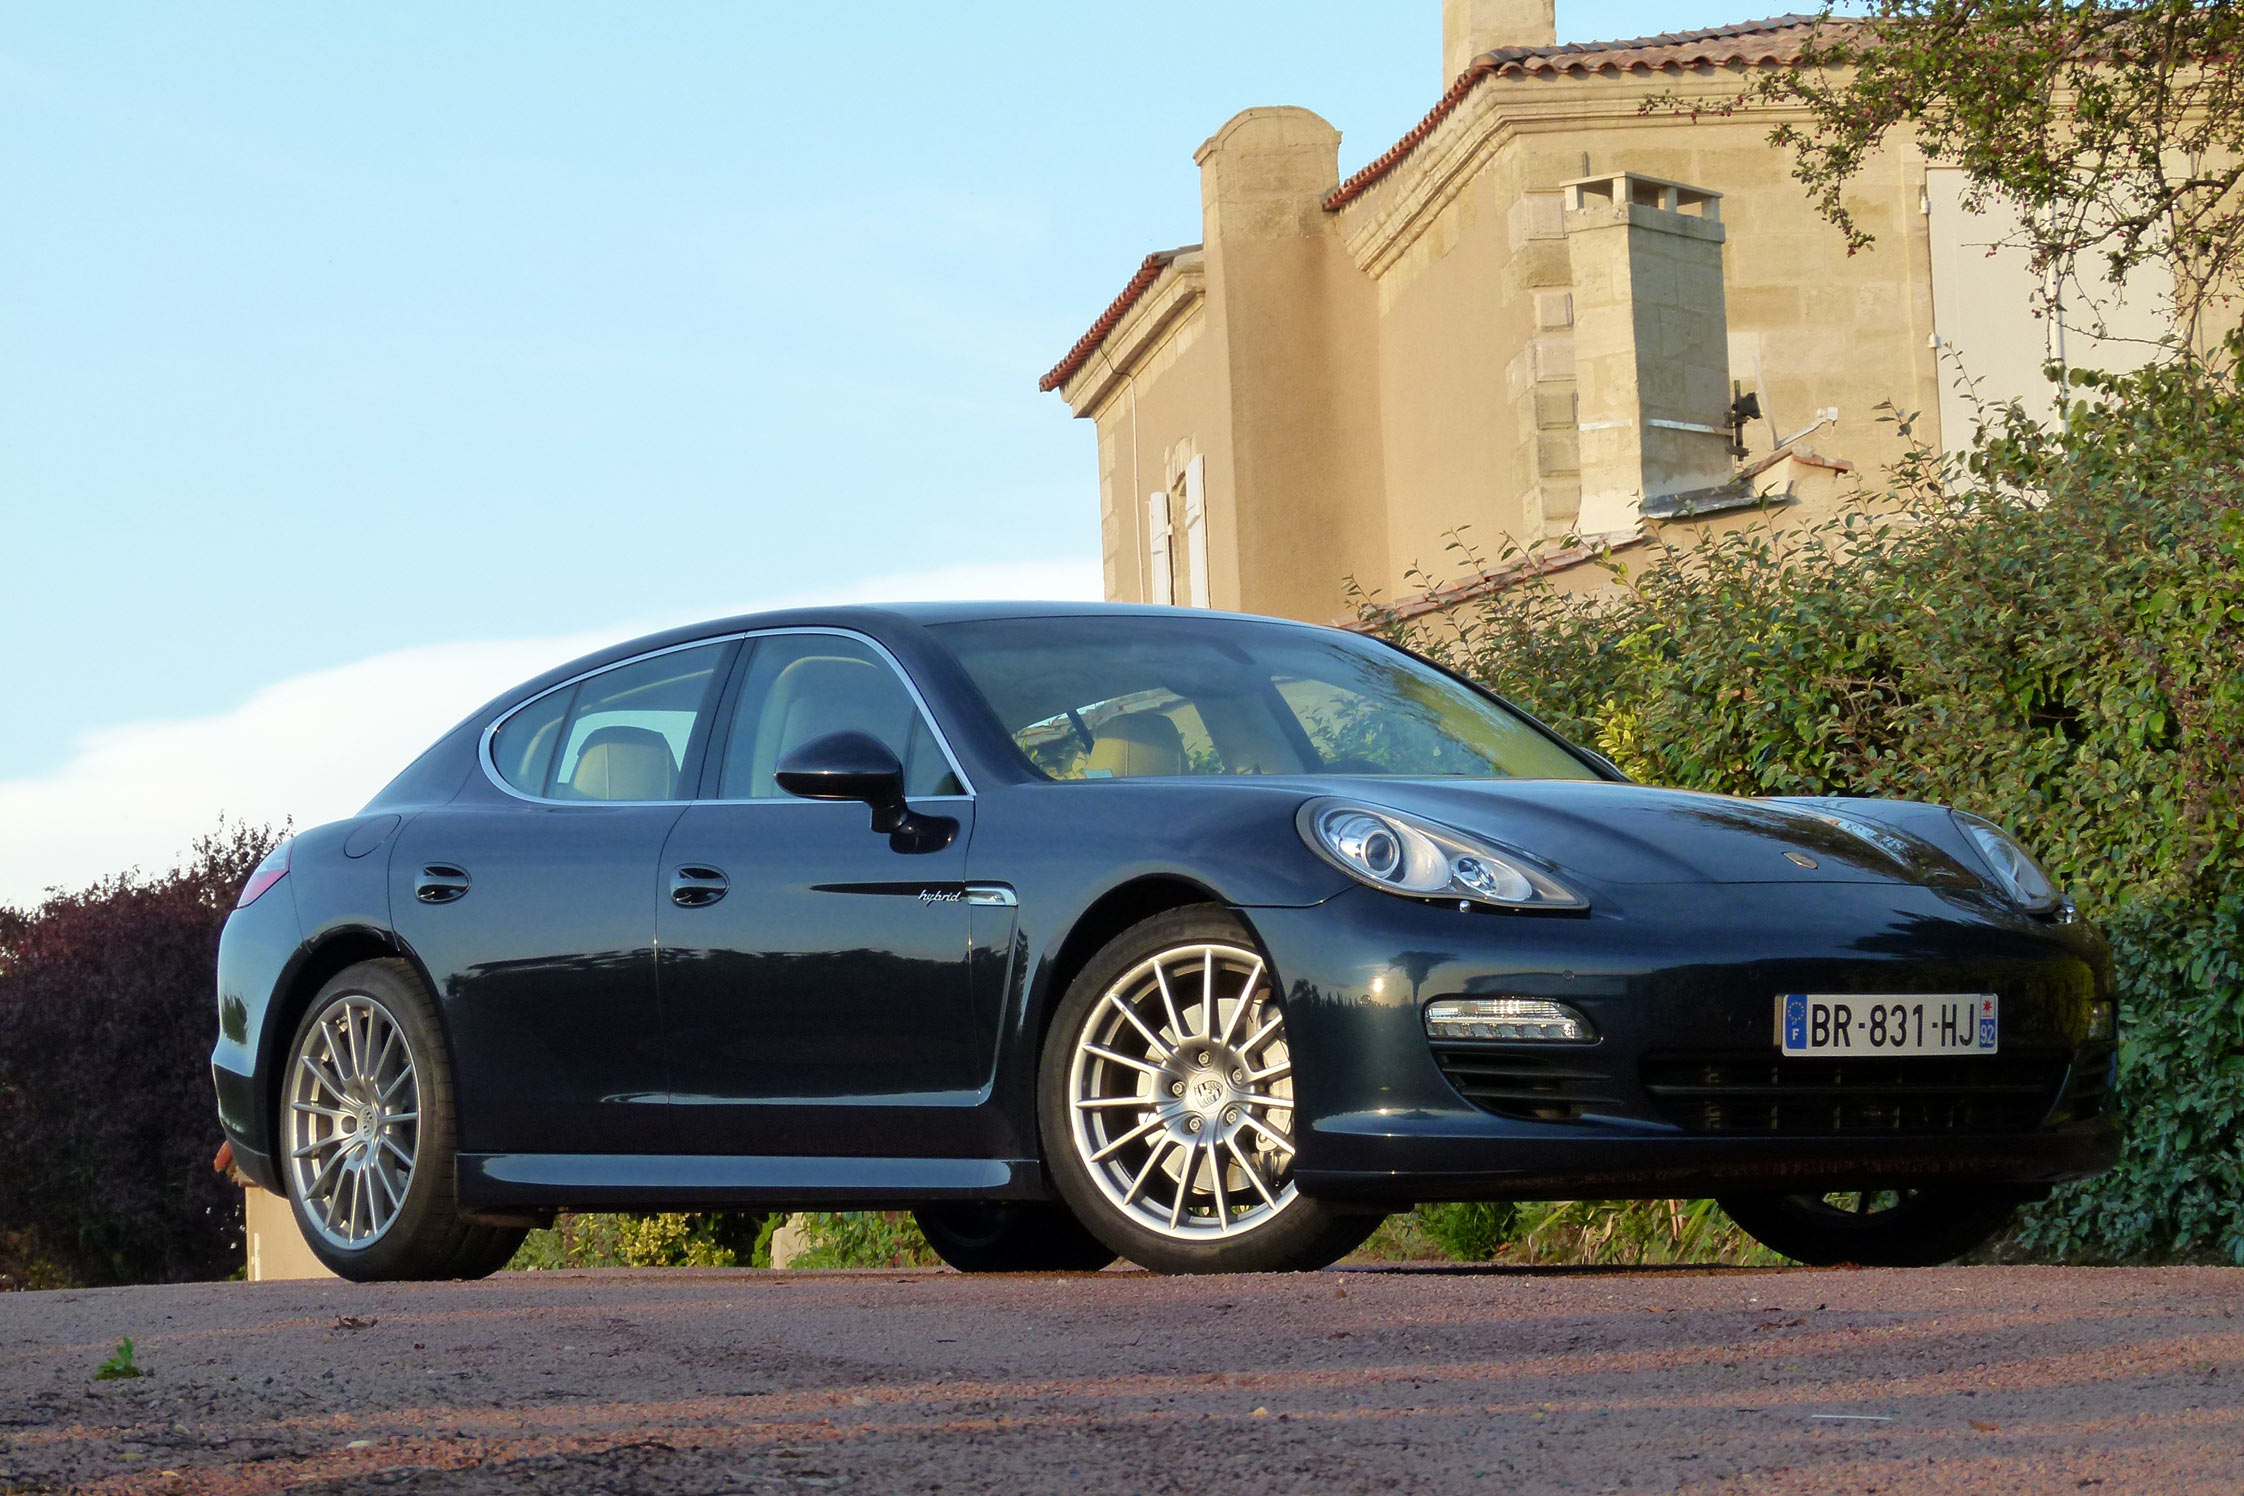 essai porsche panamera s hybrid motorlegend. Black Bedroom Furniture Sets. Home Design Ideas